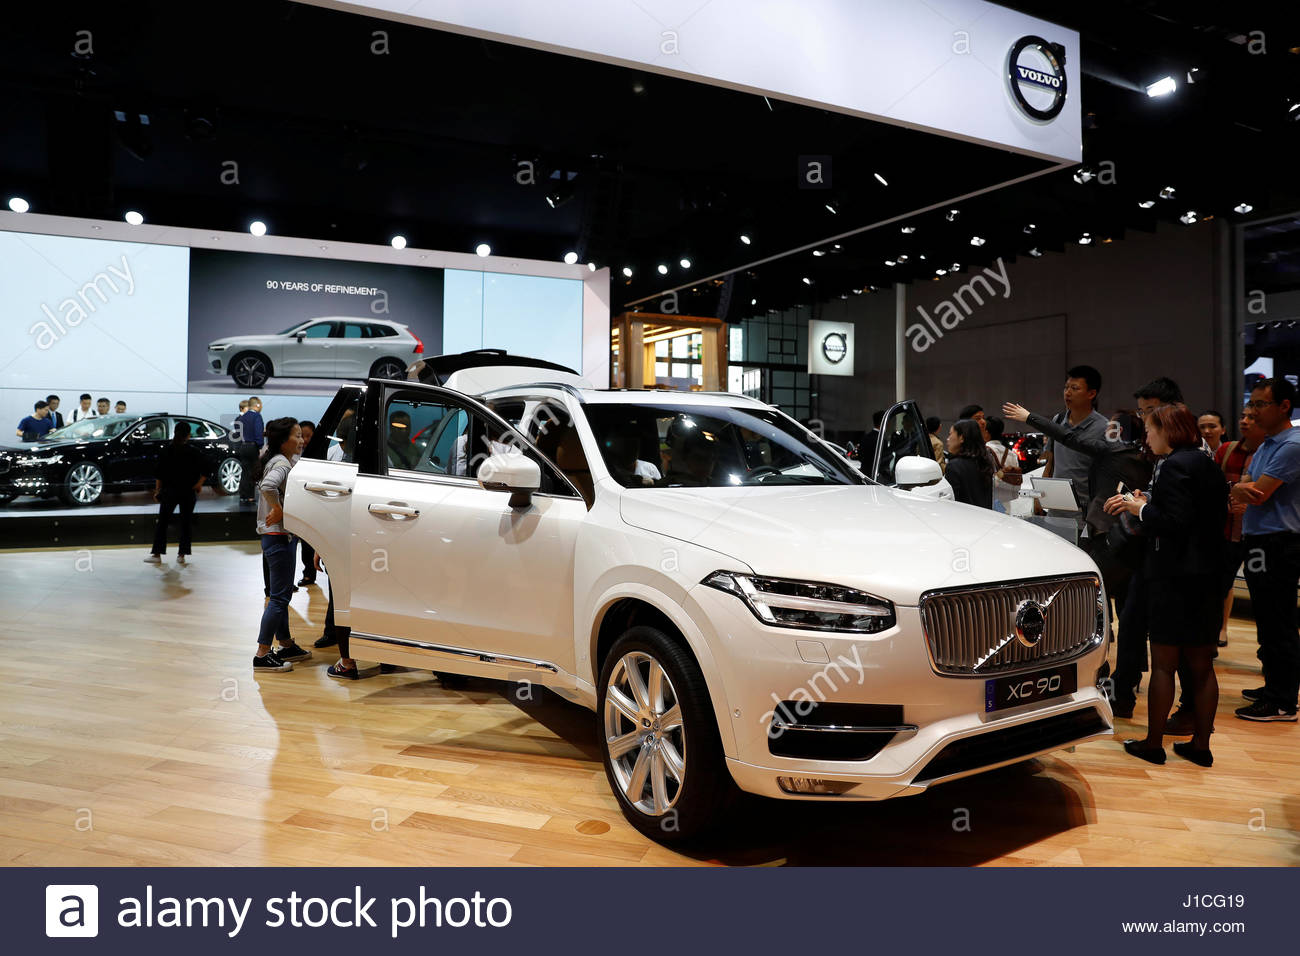 China auto show stock photos china auto show stock images alamy - Shanghai auto show ...